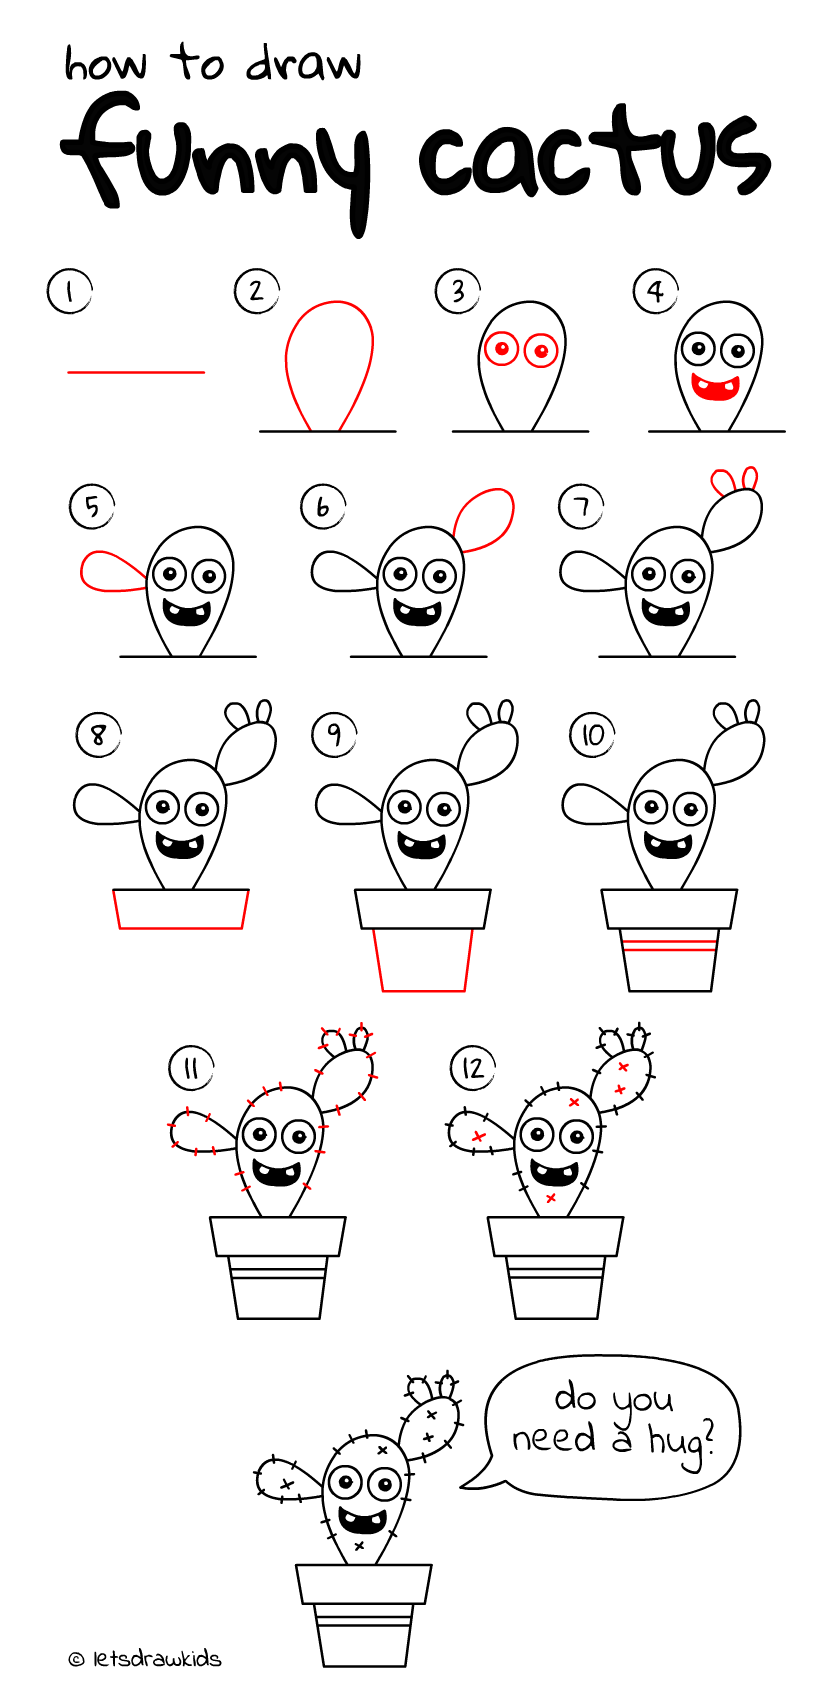 How To Draw Funny Cactus Easy Drawing Step By Step Perfect For Kids Let S Draw Kids Http Letsd Drawing Videos For Kids Easy Drawing Steps Simple Doodles